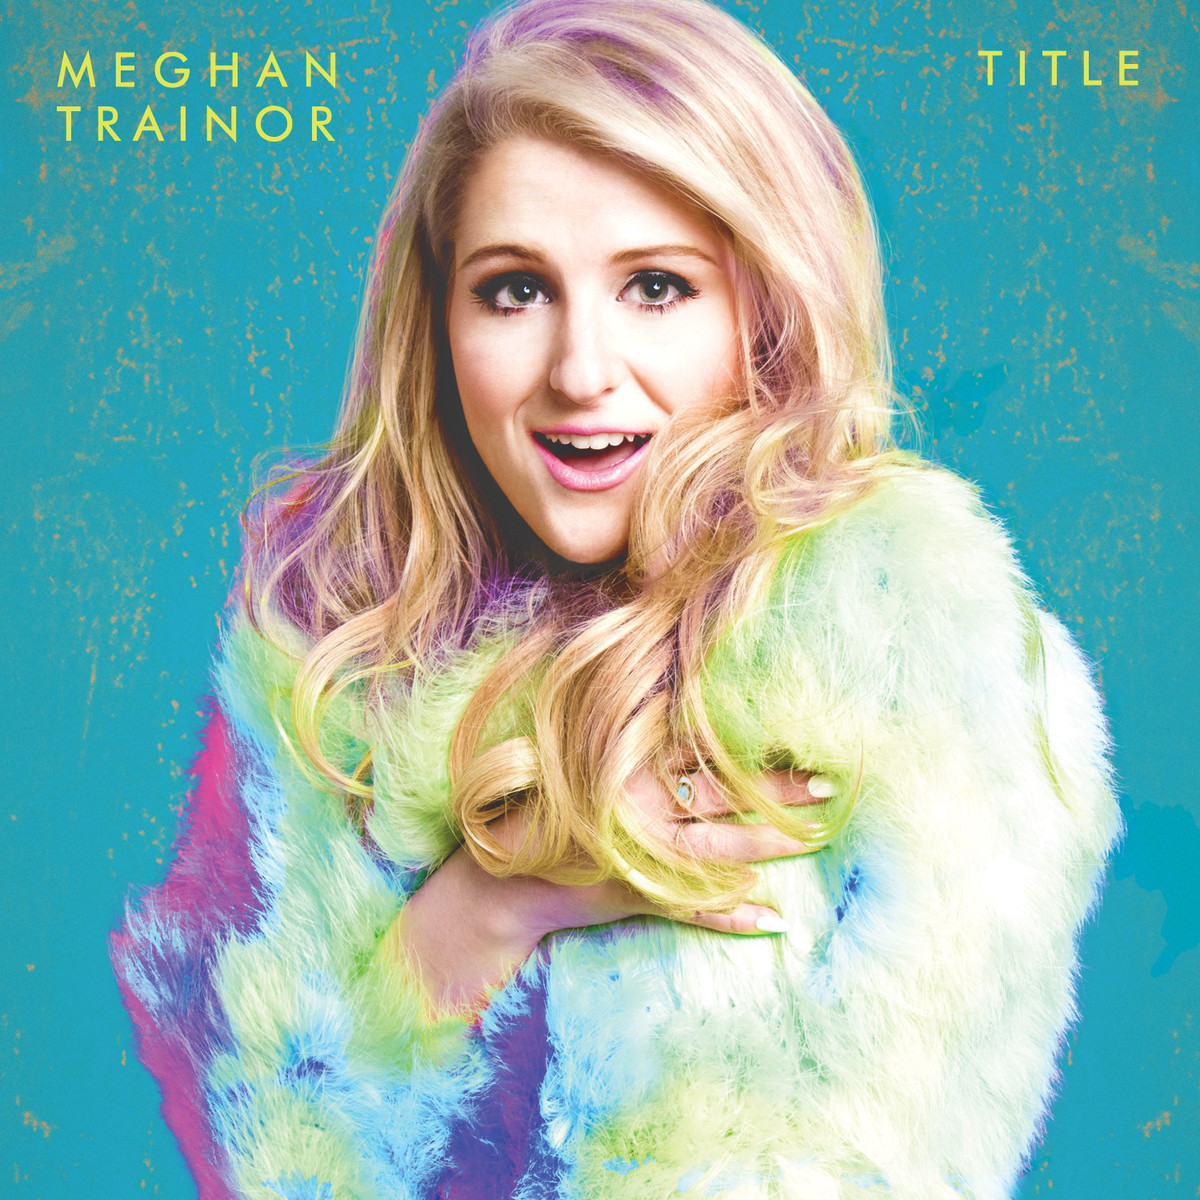 Deluxe Edition Meghan Trainor Meghan Trainor Album